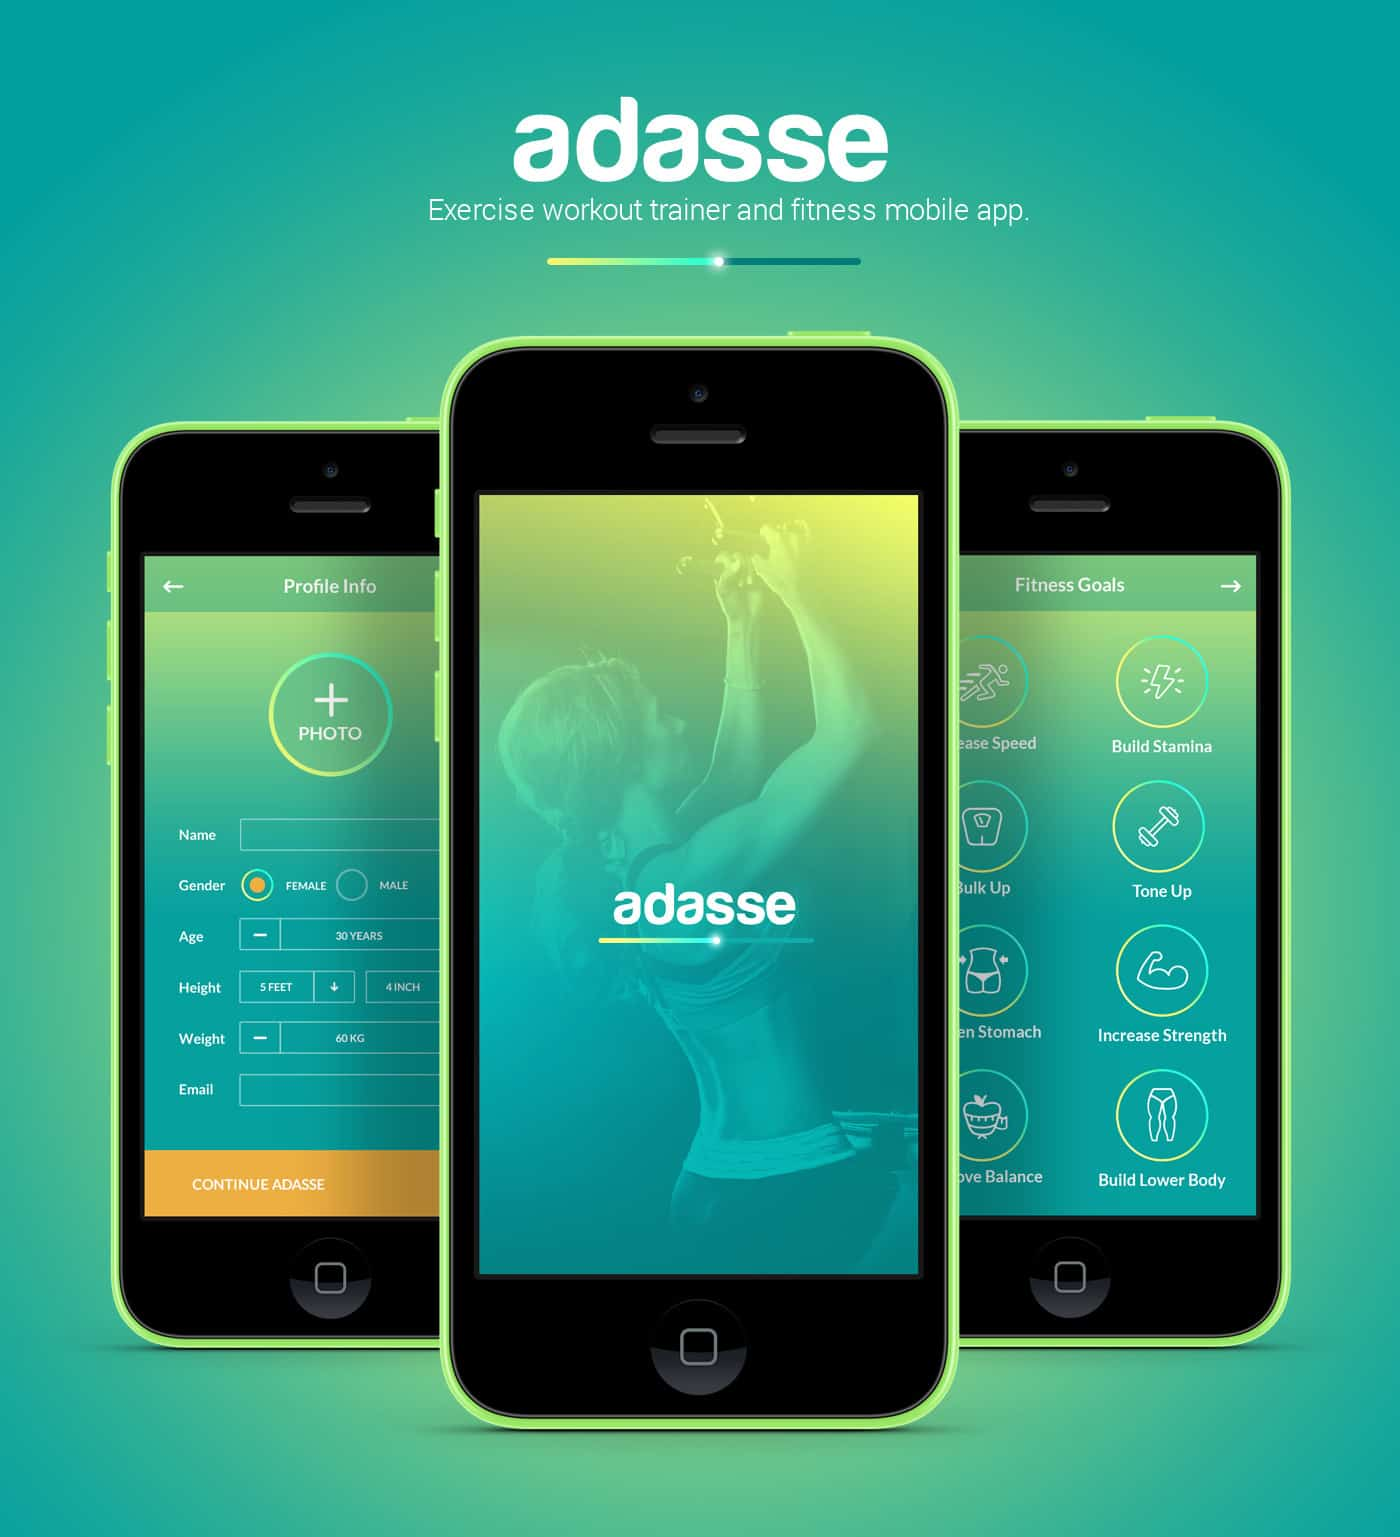 adasse gym workout mobile app by naresh kumar   design ideas